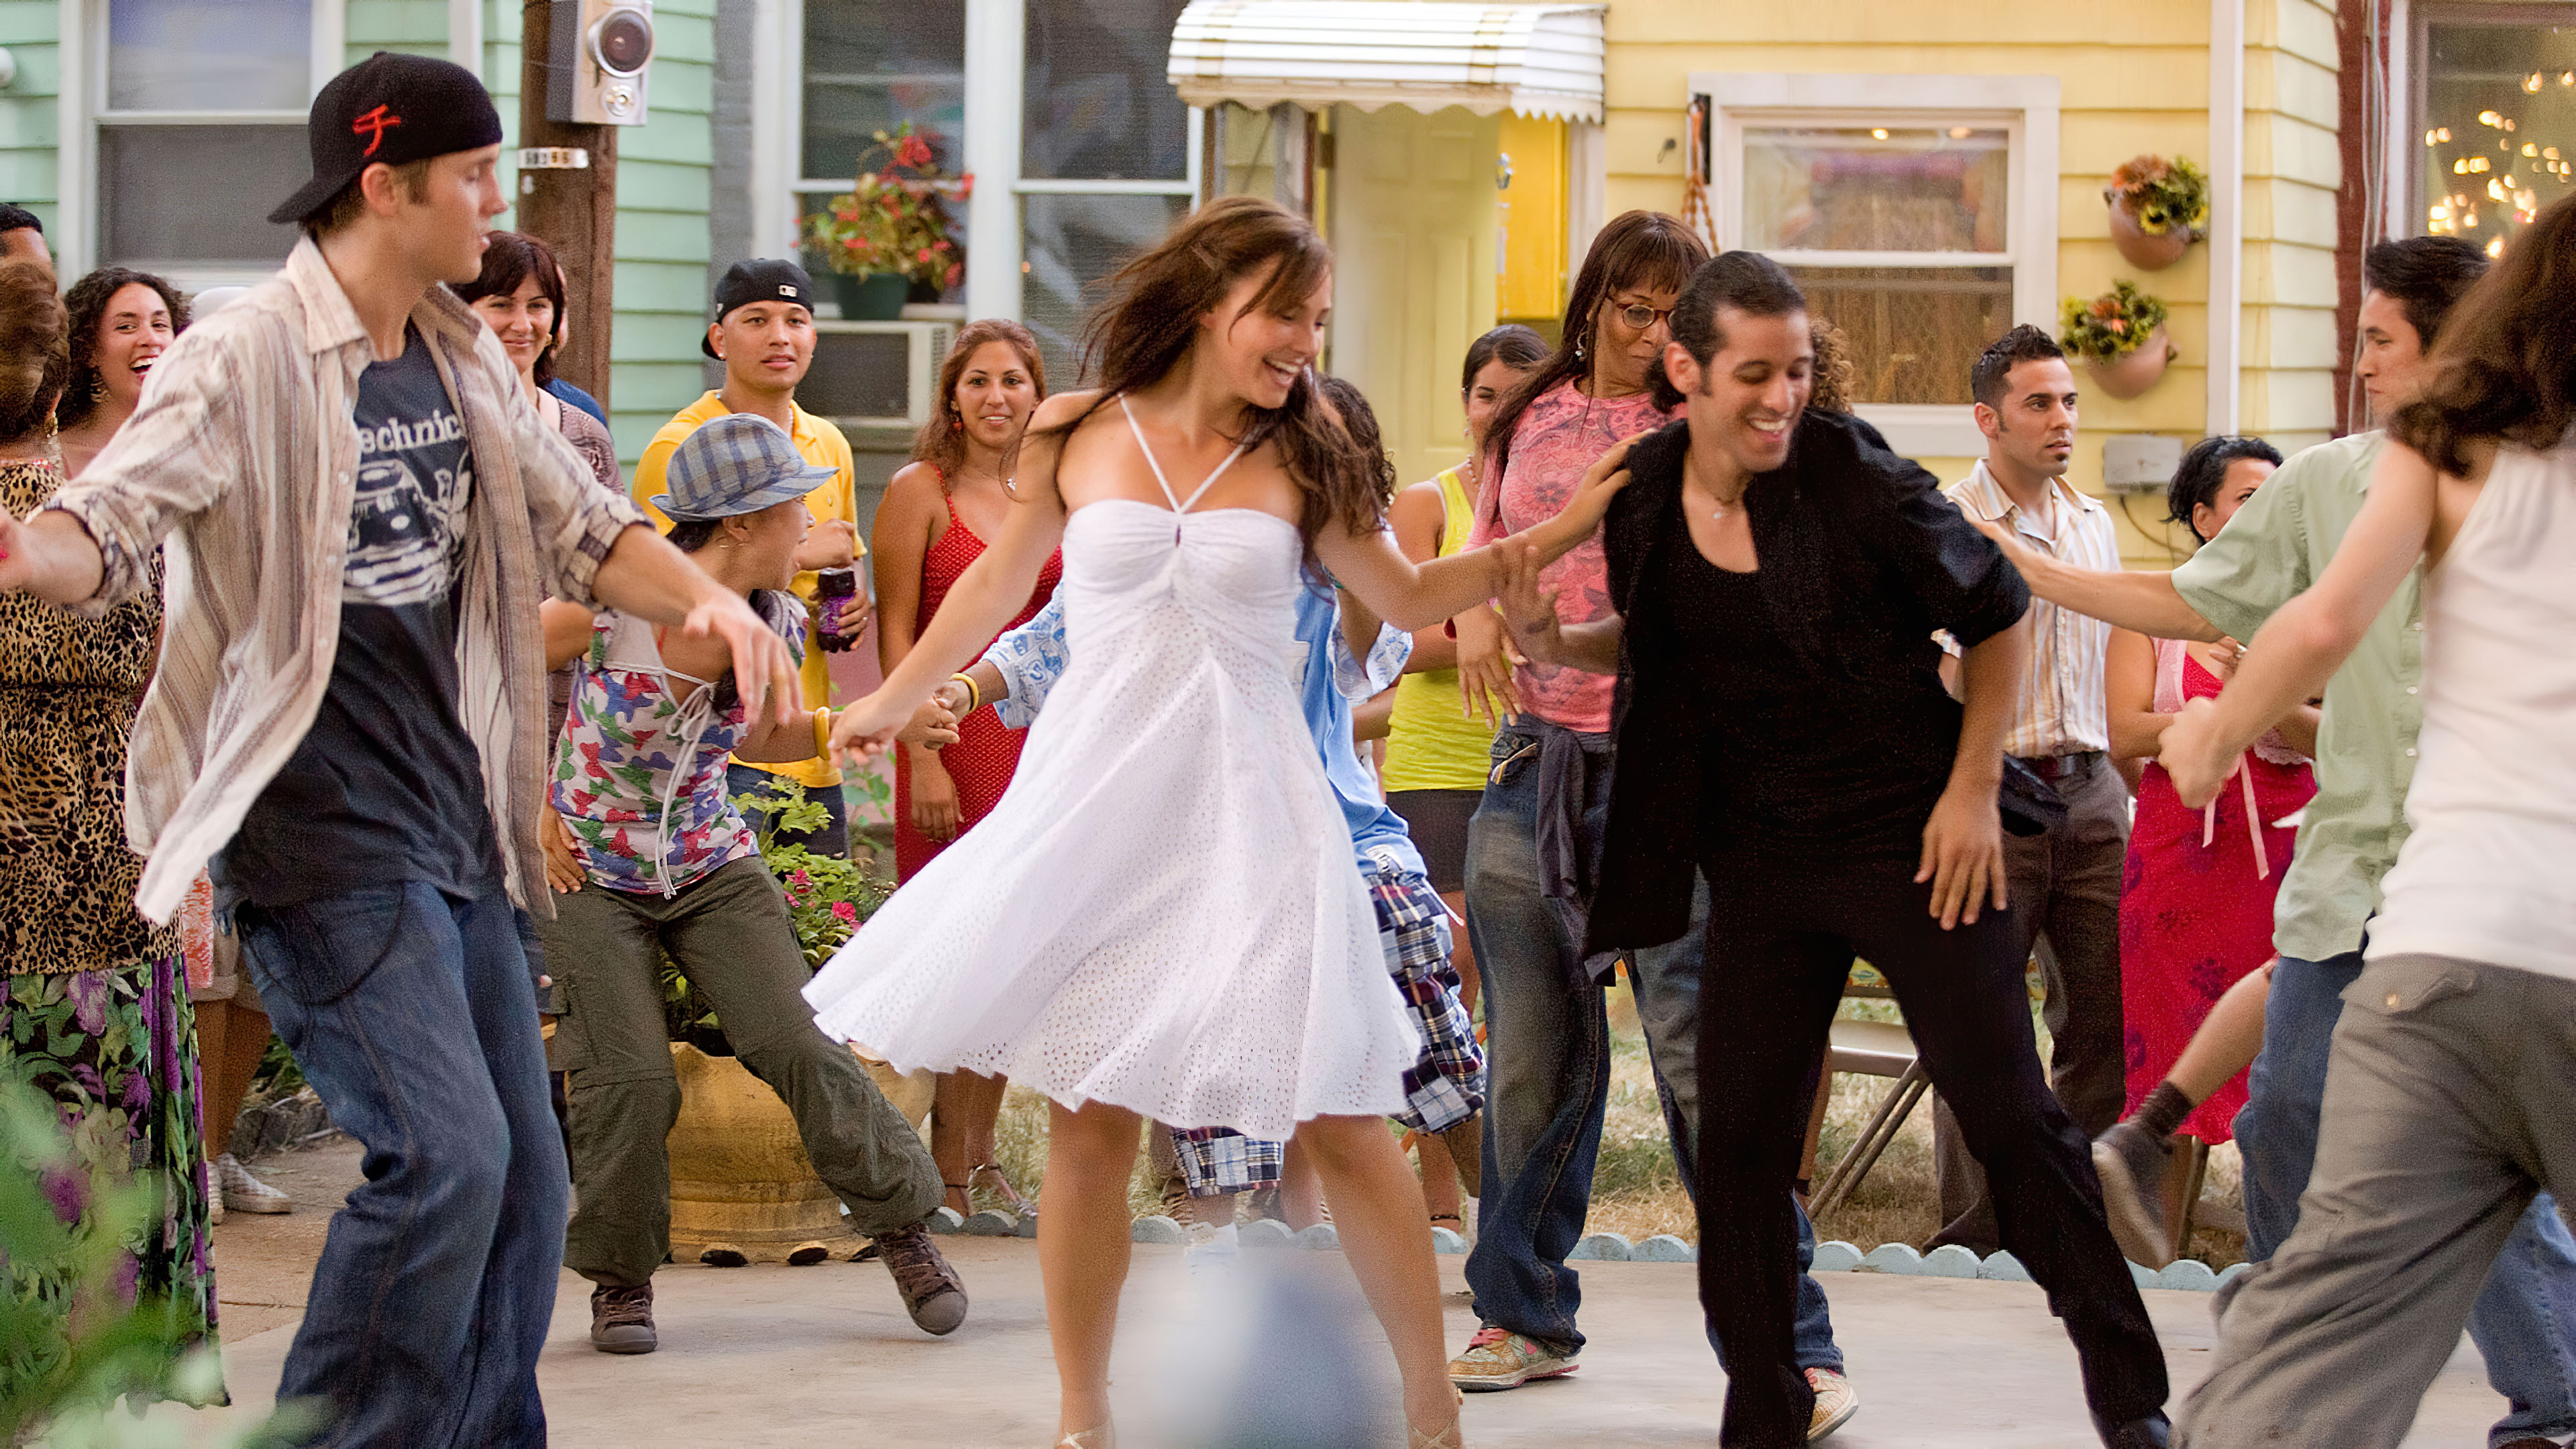 Prime Video: Step Up 2: The Streets